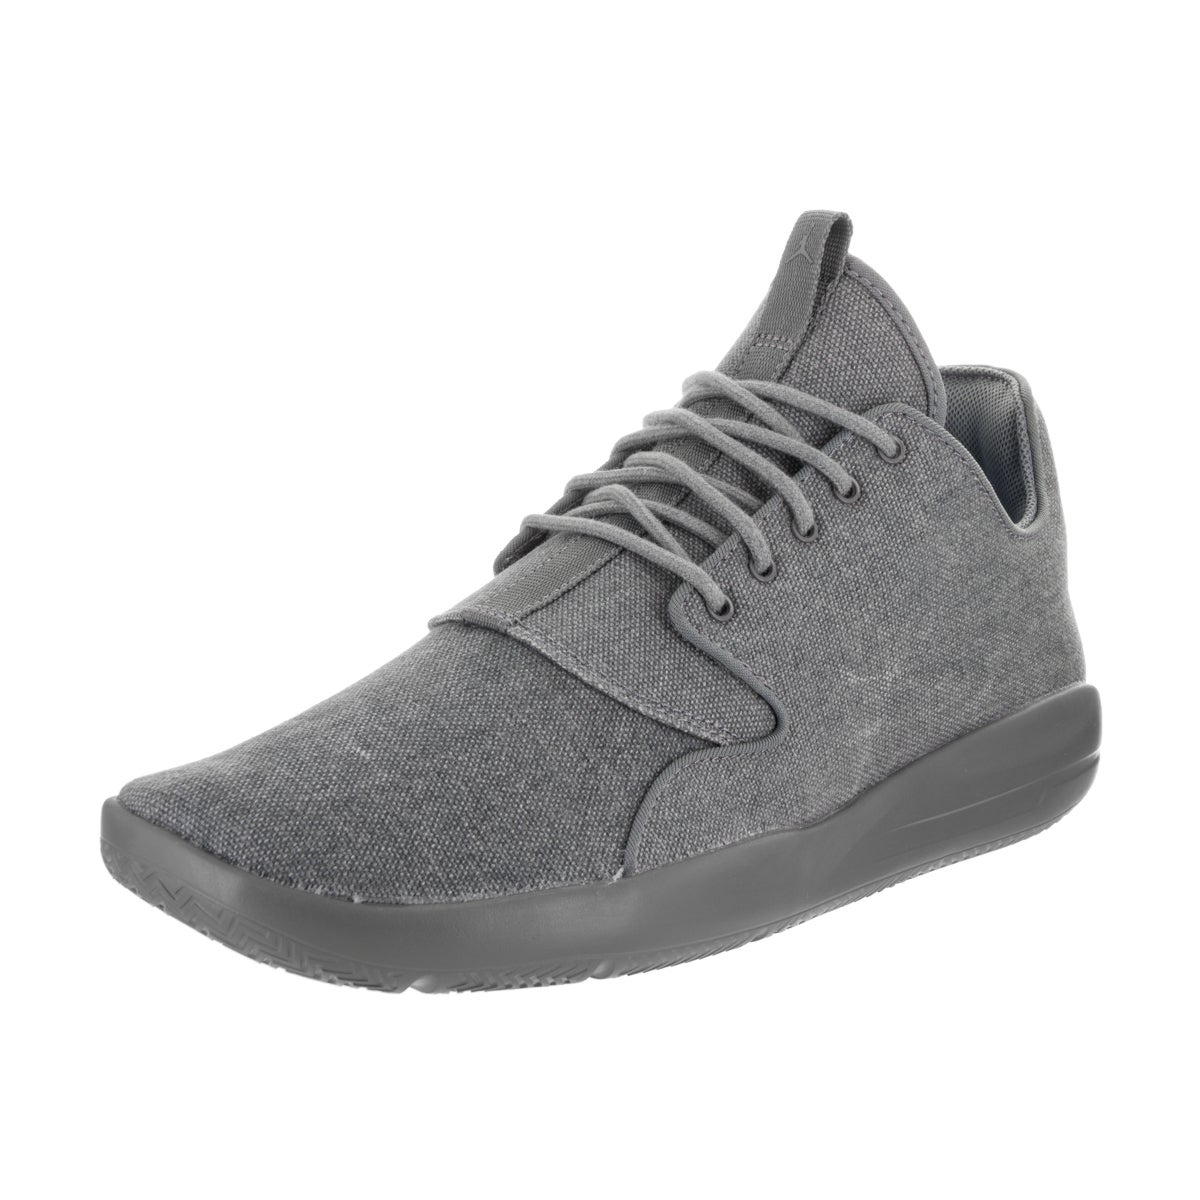 b5de34c2329 Shop Nike Jordan Men s Jordan Eclipse Grey Textile Running Shoes - Free  Shipping Today - Overstock.com - 15924451